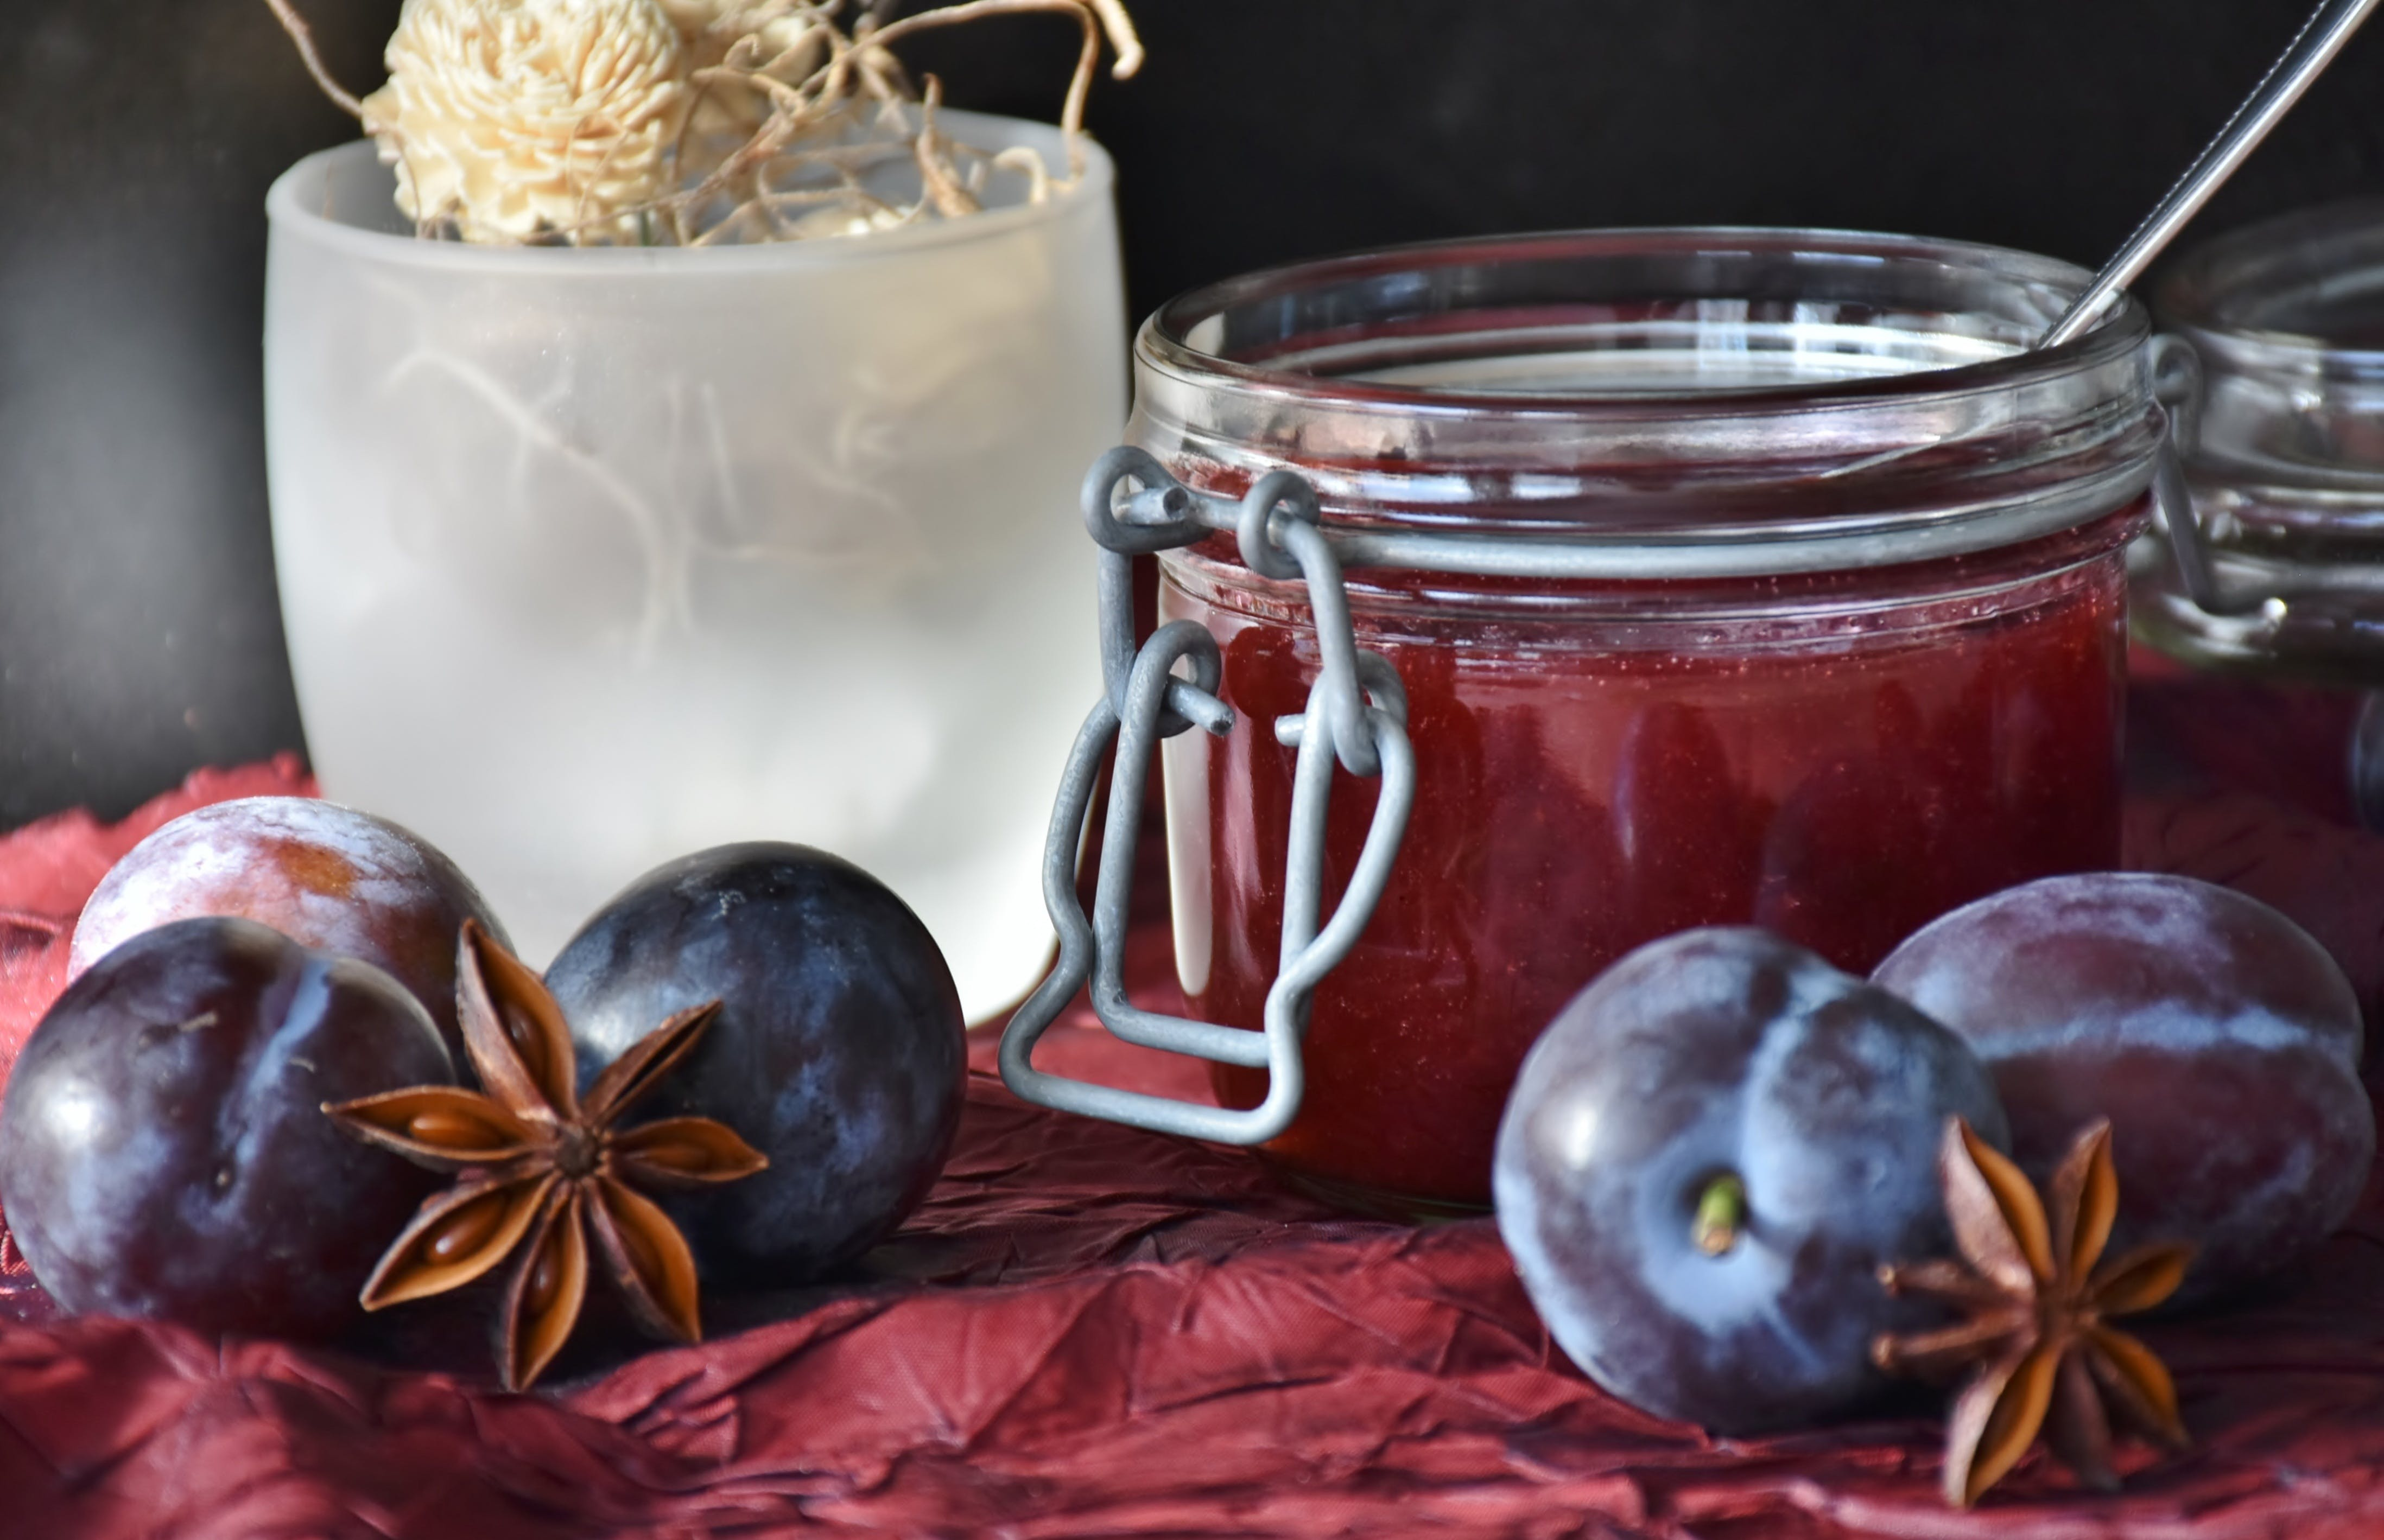 Round Fruit Near Mason Glass Jar